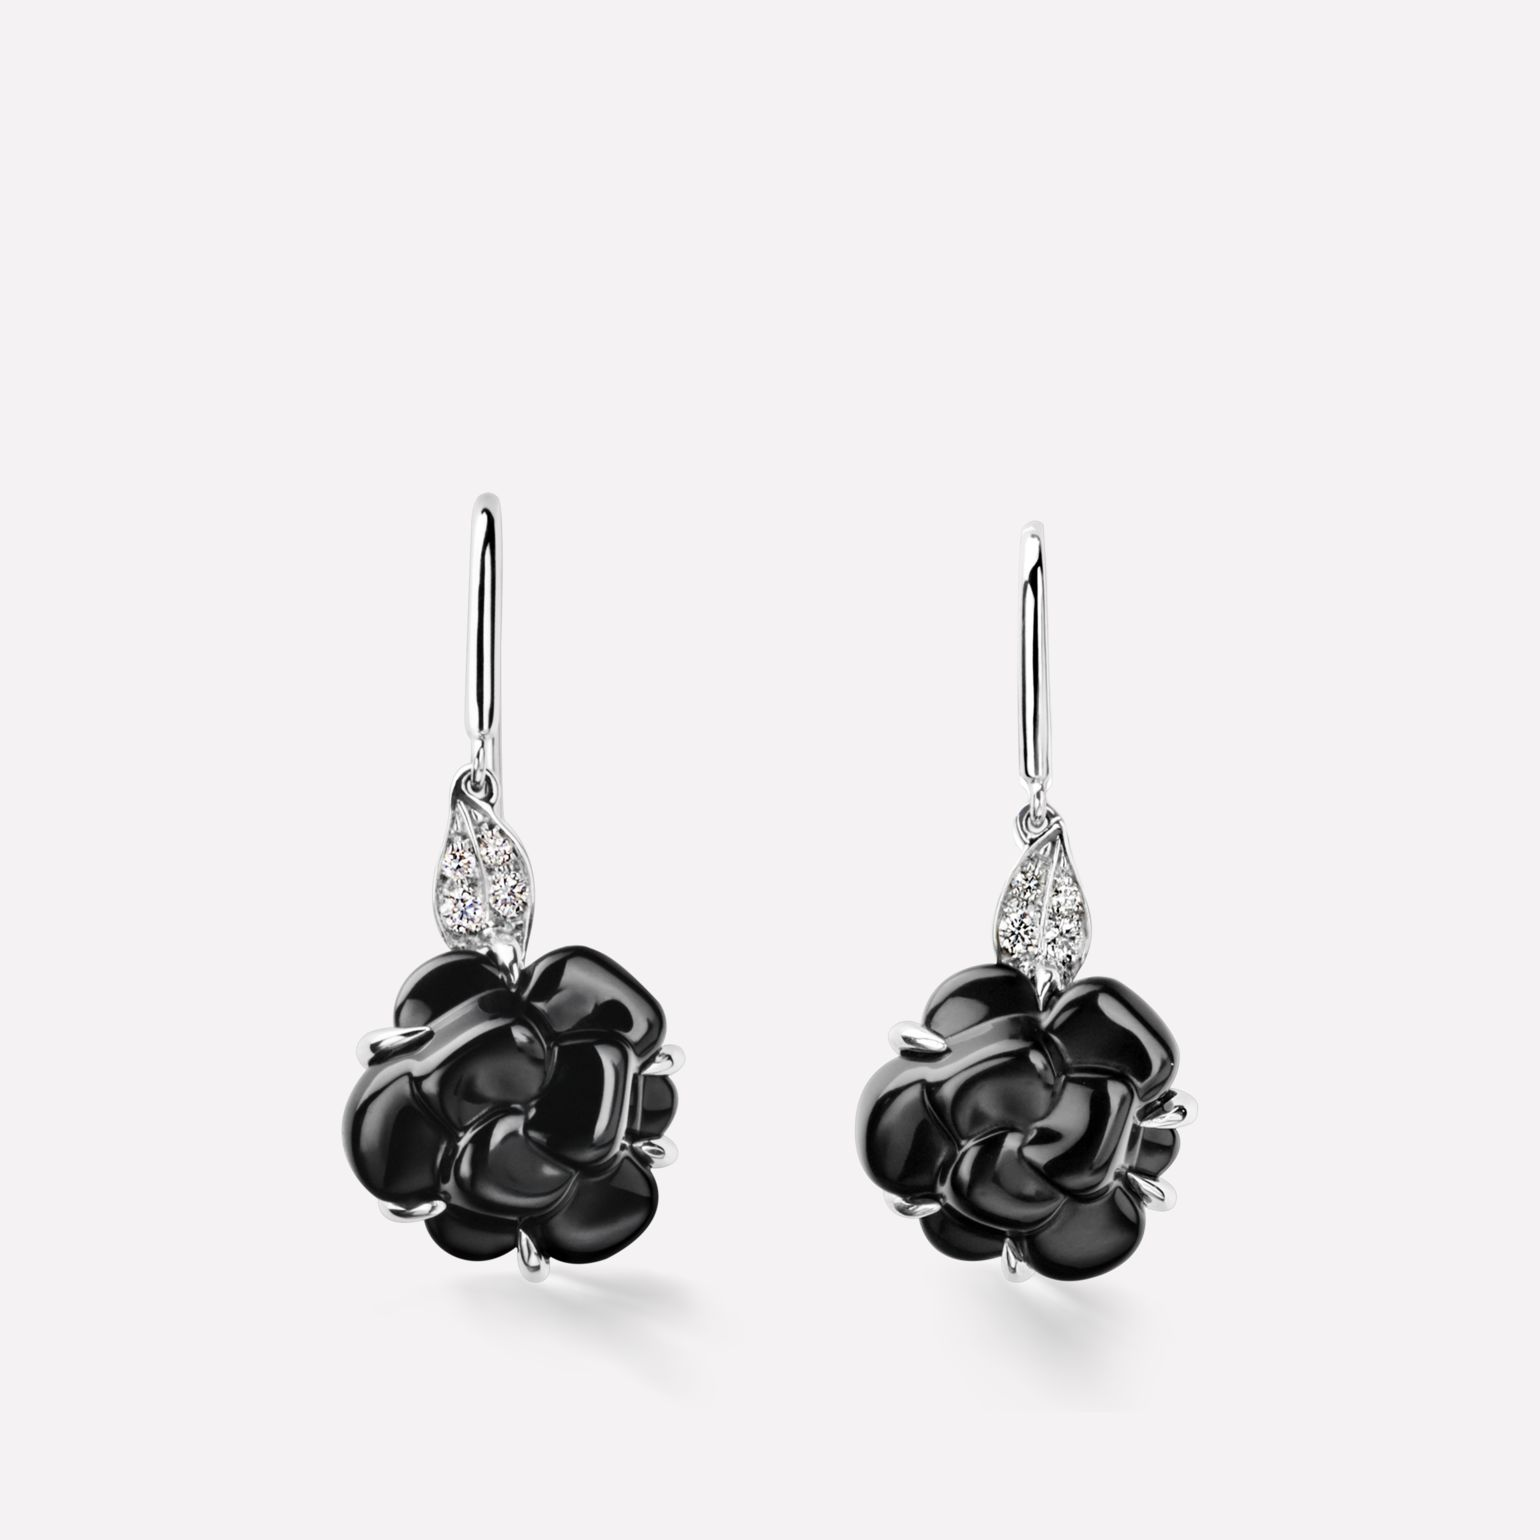 Camélia Sculpté earrings 18K white gold, diamonds, onyx